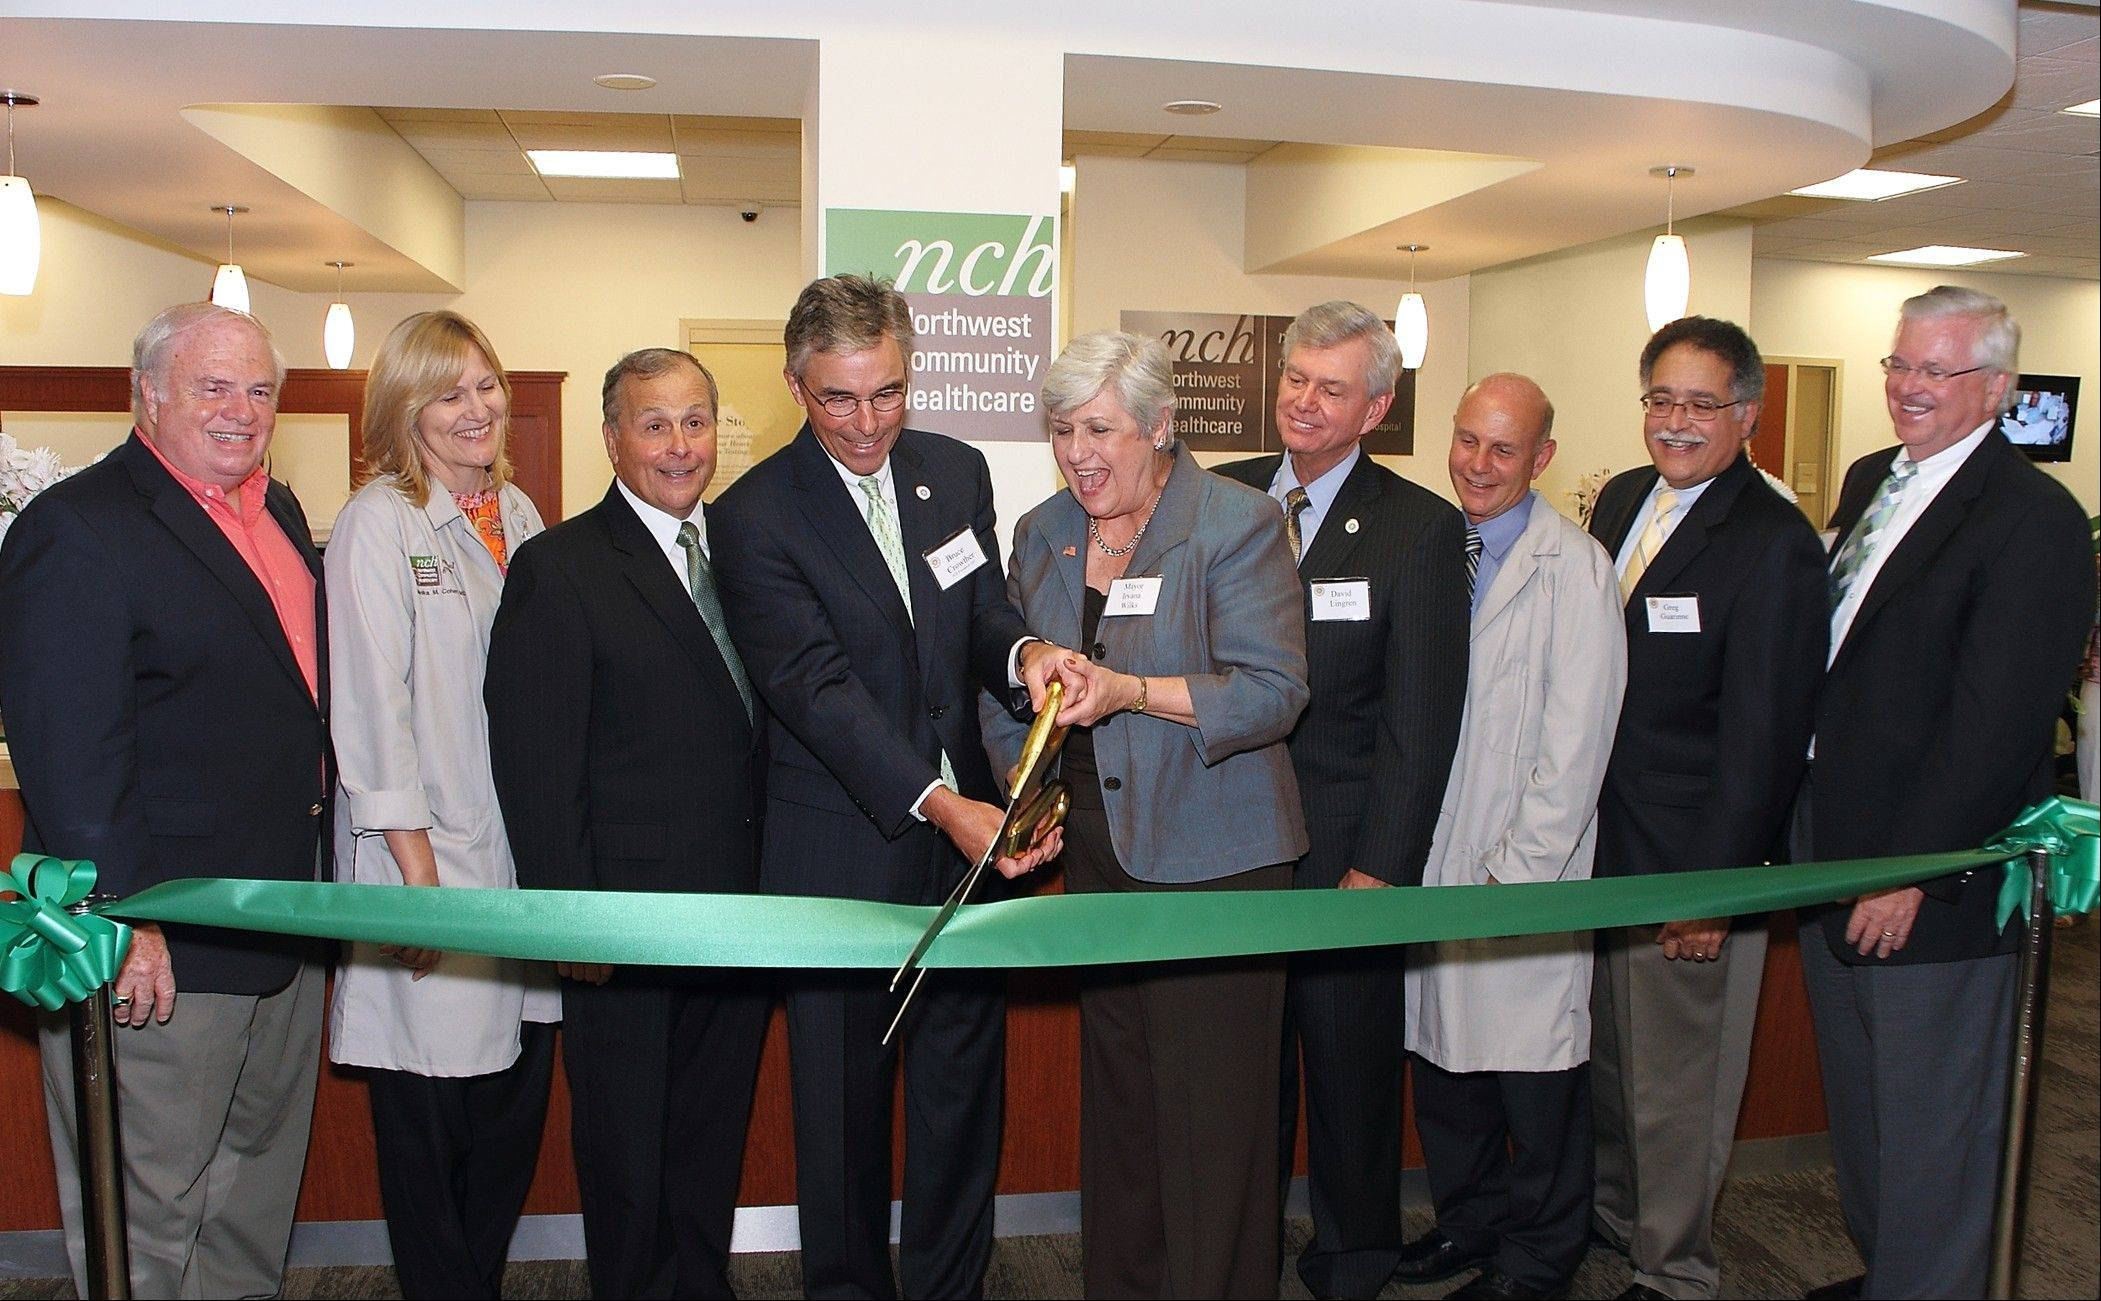 Business and community leaders join Bruce Crowther, president and chief executive officer of Northwest Community Hospital, and Mount Prospect Village President Irvana Wilks at the hospital's new health center. The Mount Prospect center will hold an open house Saturday, Aug. 6.